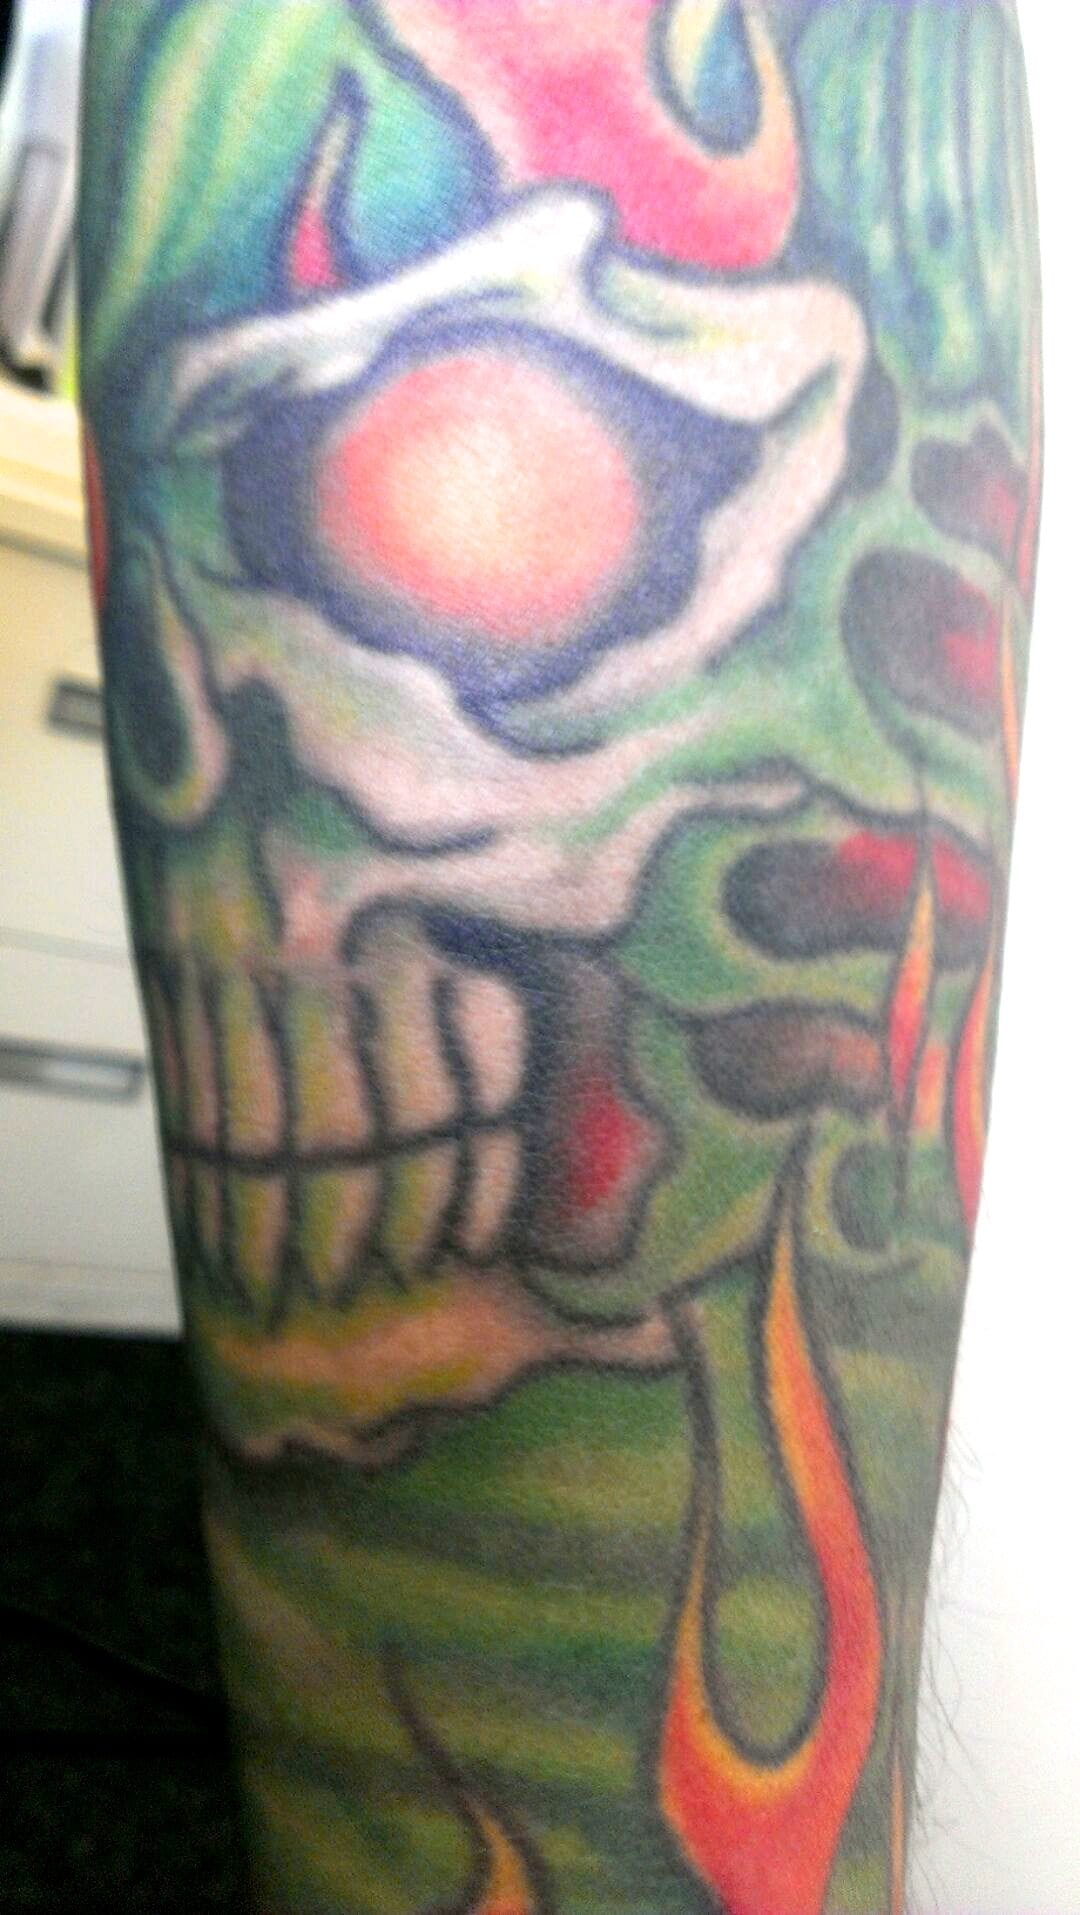 20 year old tattoo by Ray Youngman, recolored 10 years ago by Hannah Aitchison.